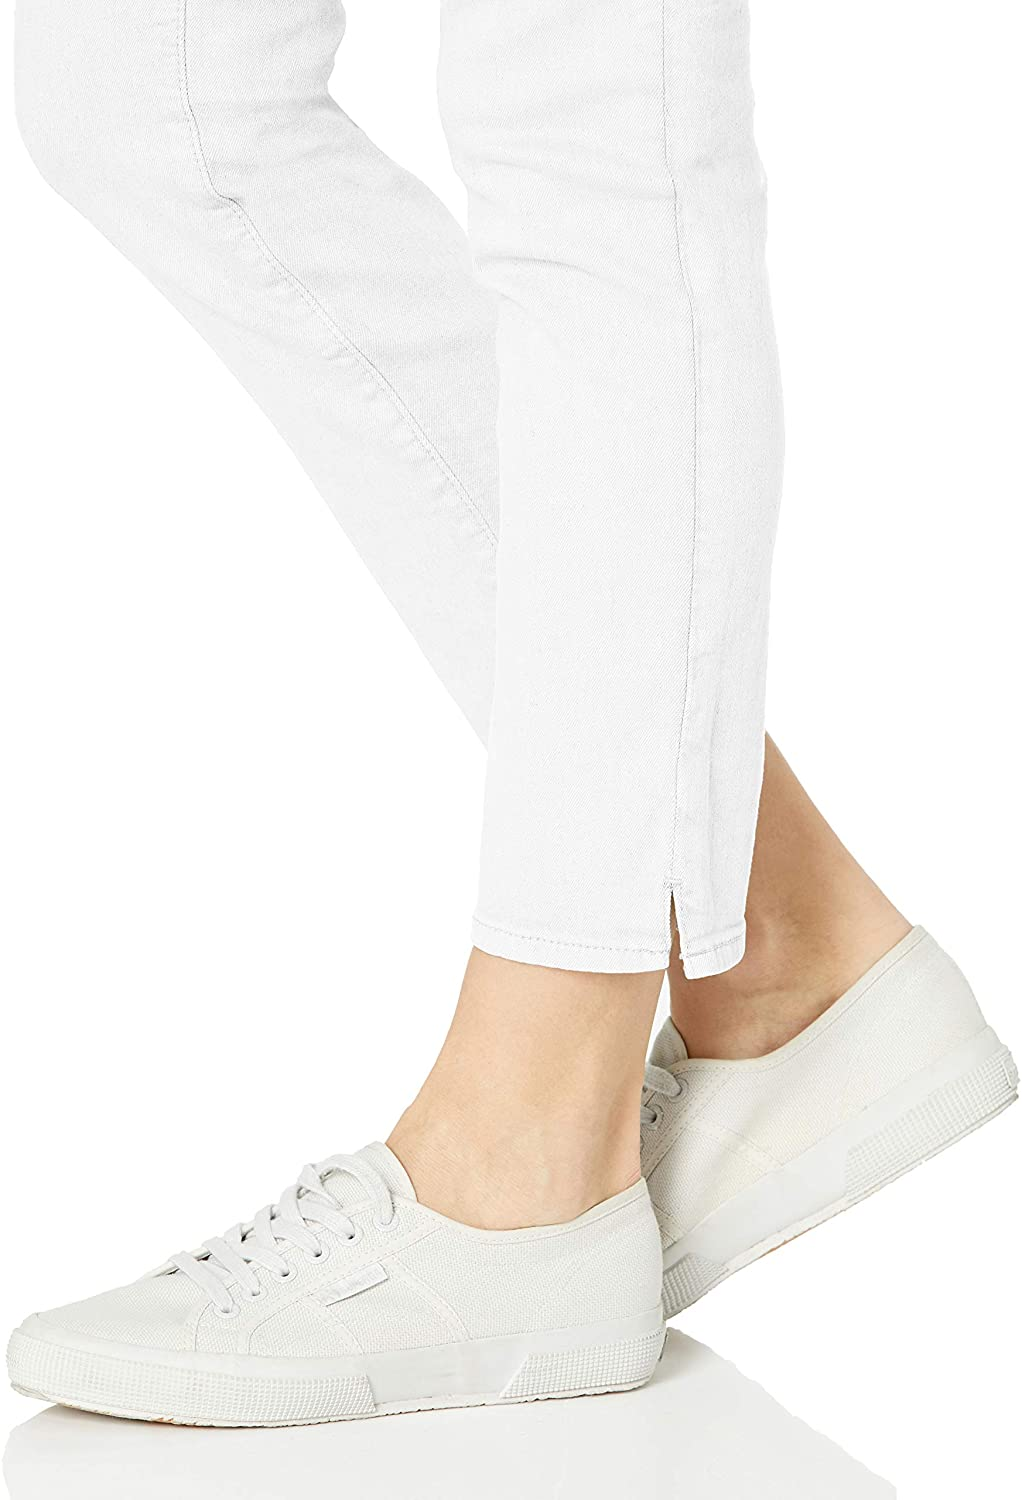 NYDJ Womens Pull on Skinny Ankle Jean with Side Slit Jeans